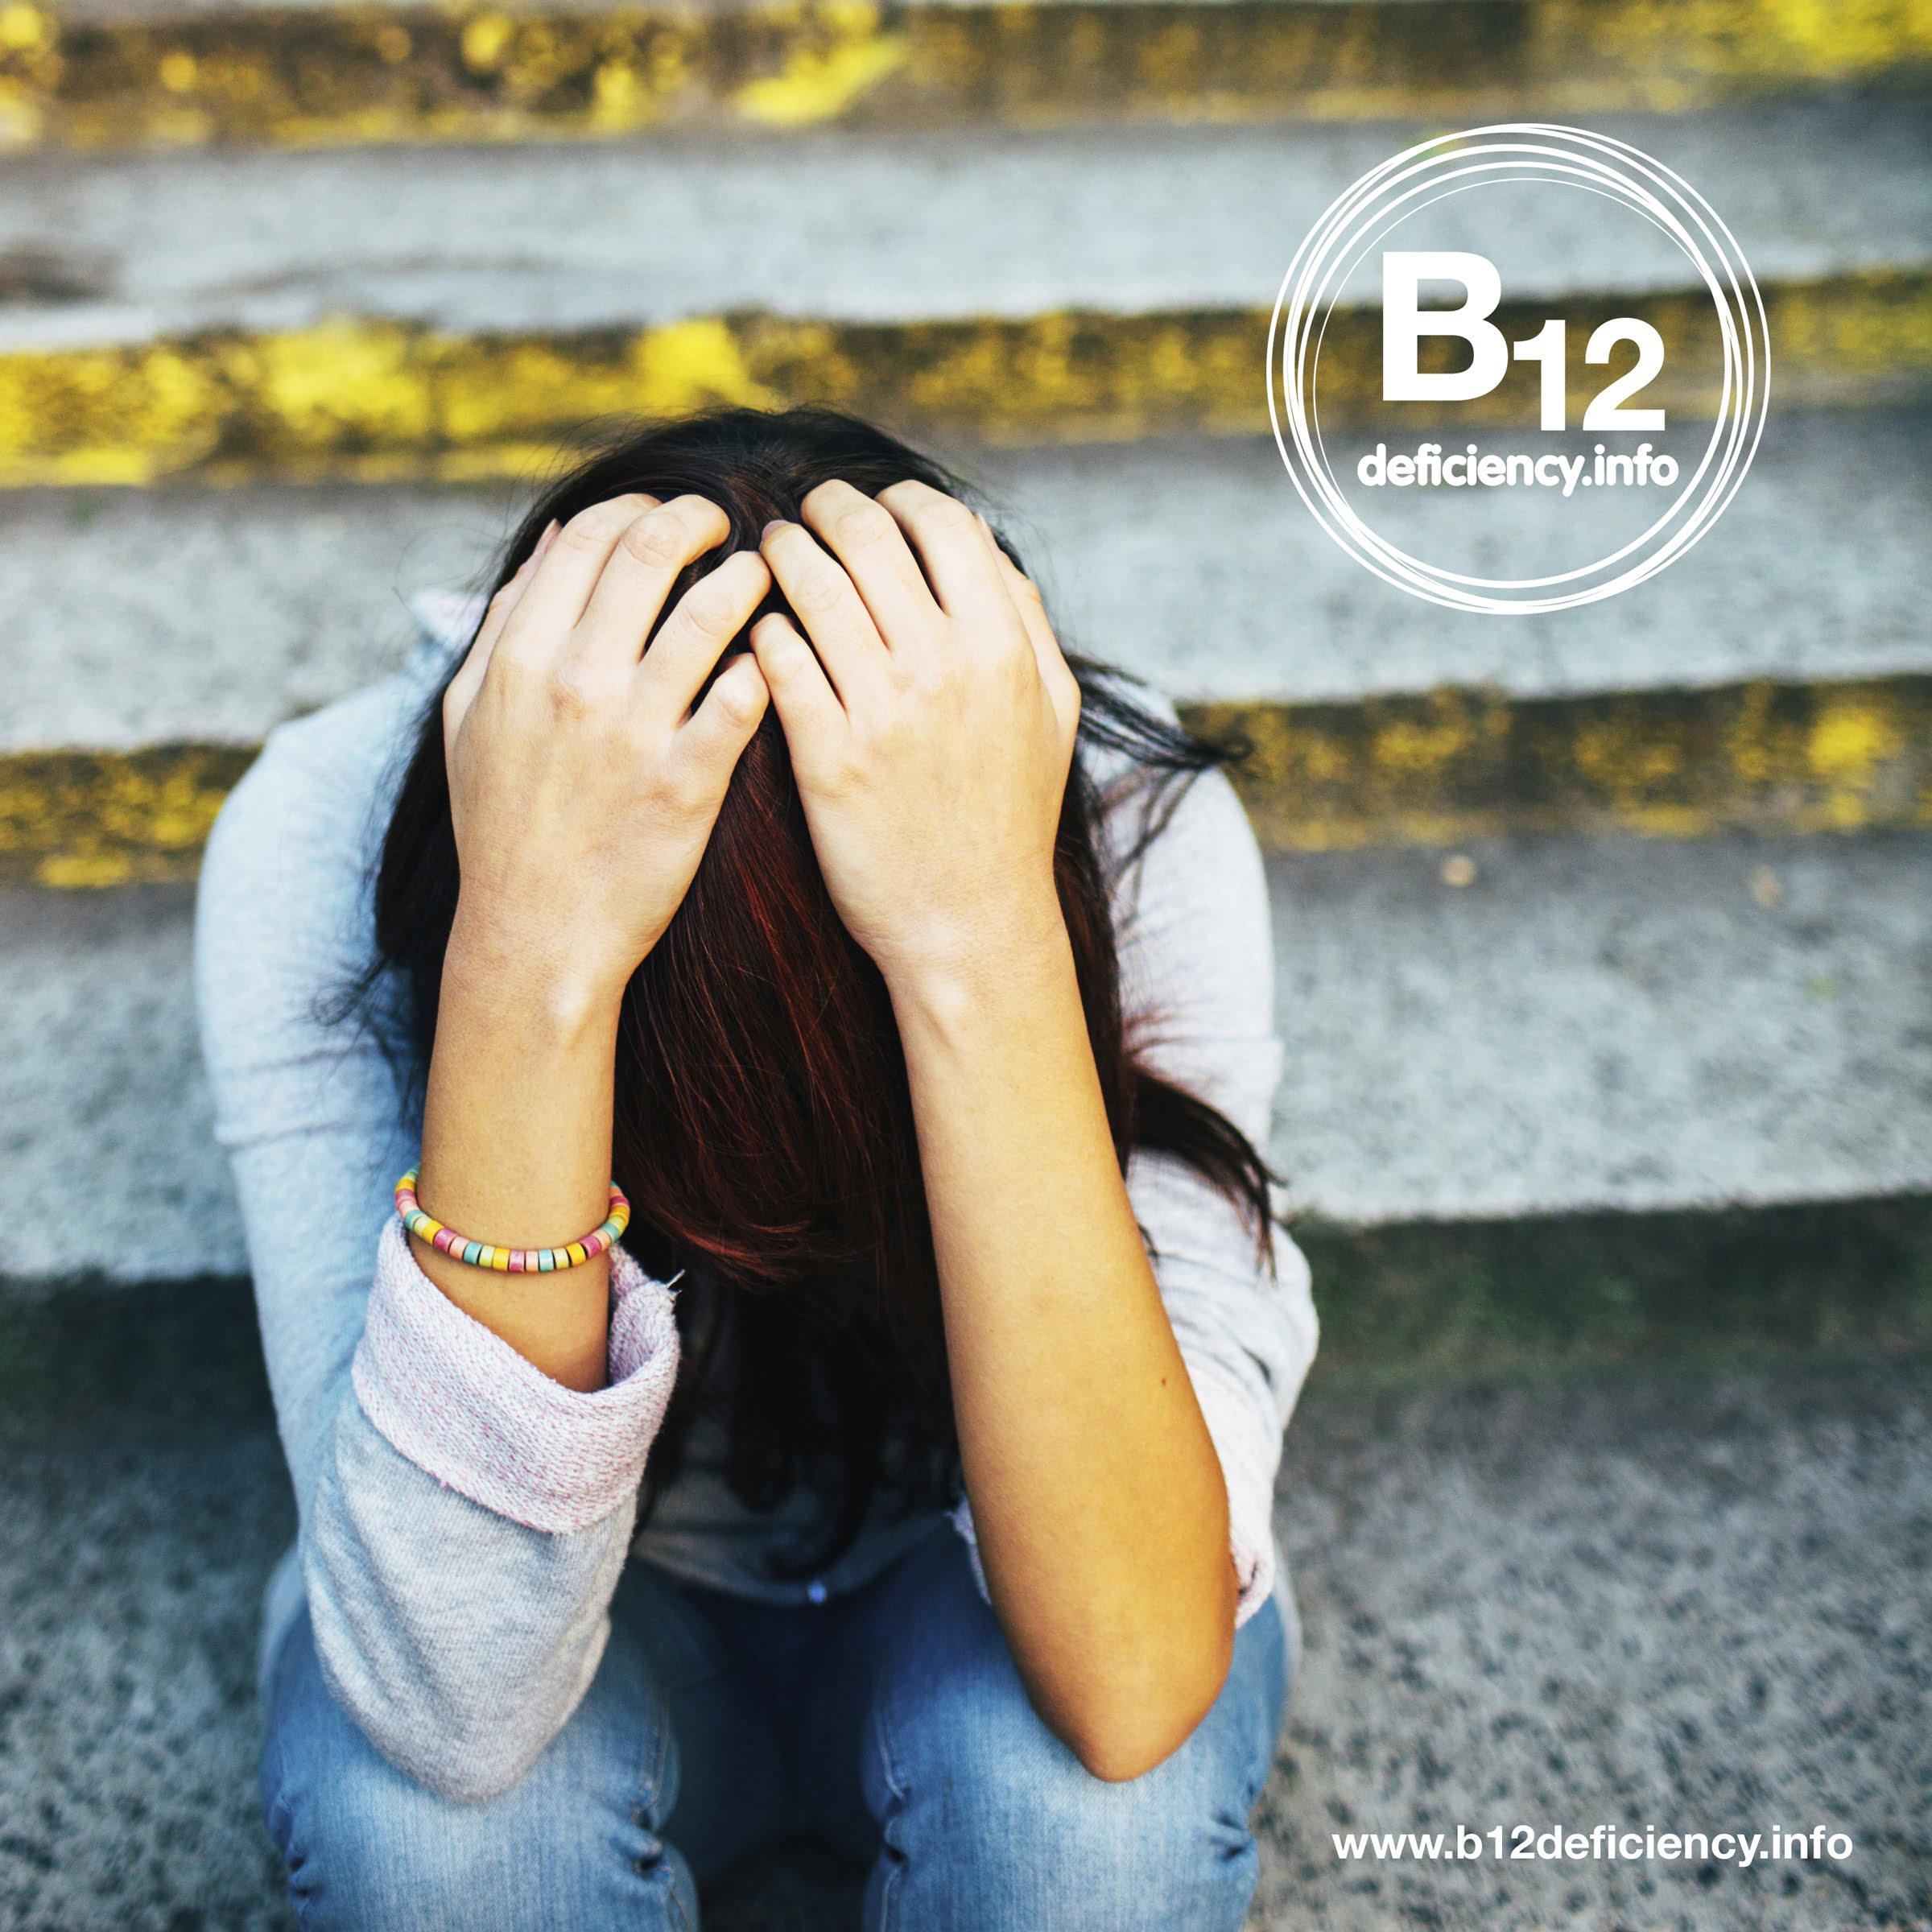 Imagine being sectioned for a vitamin B12 deficiency…….